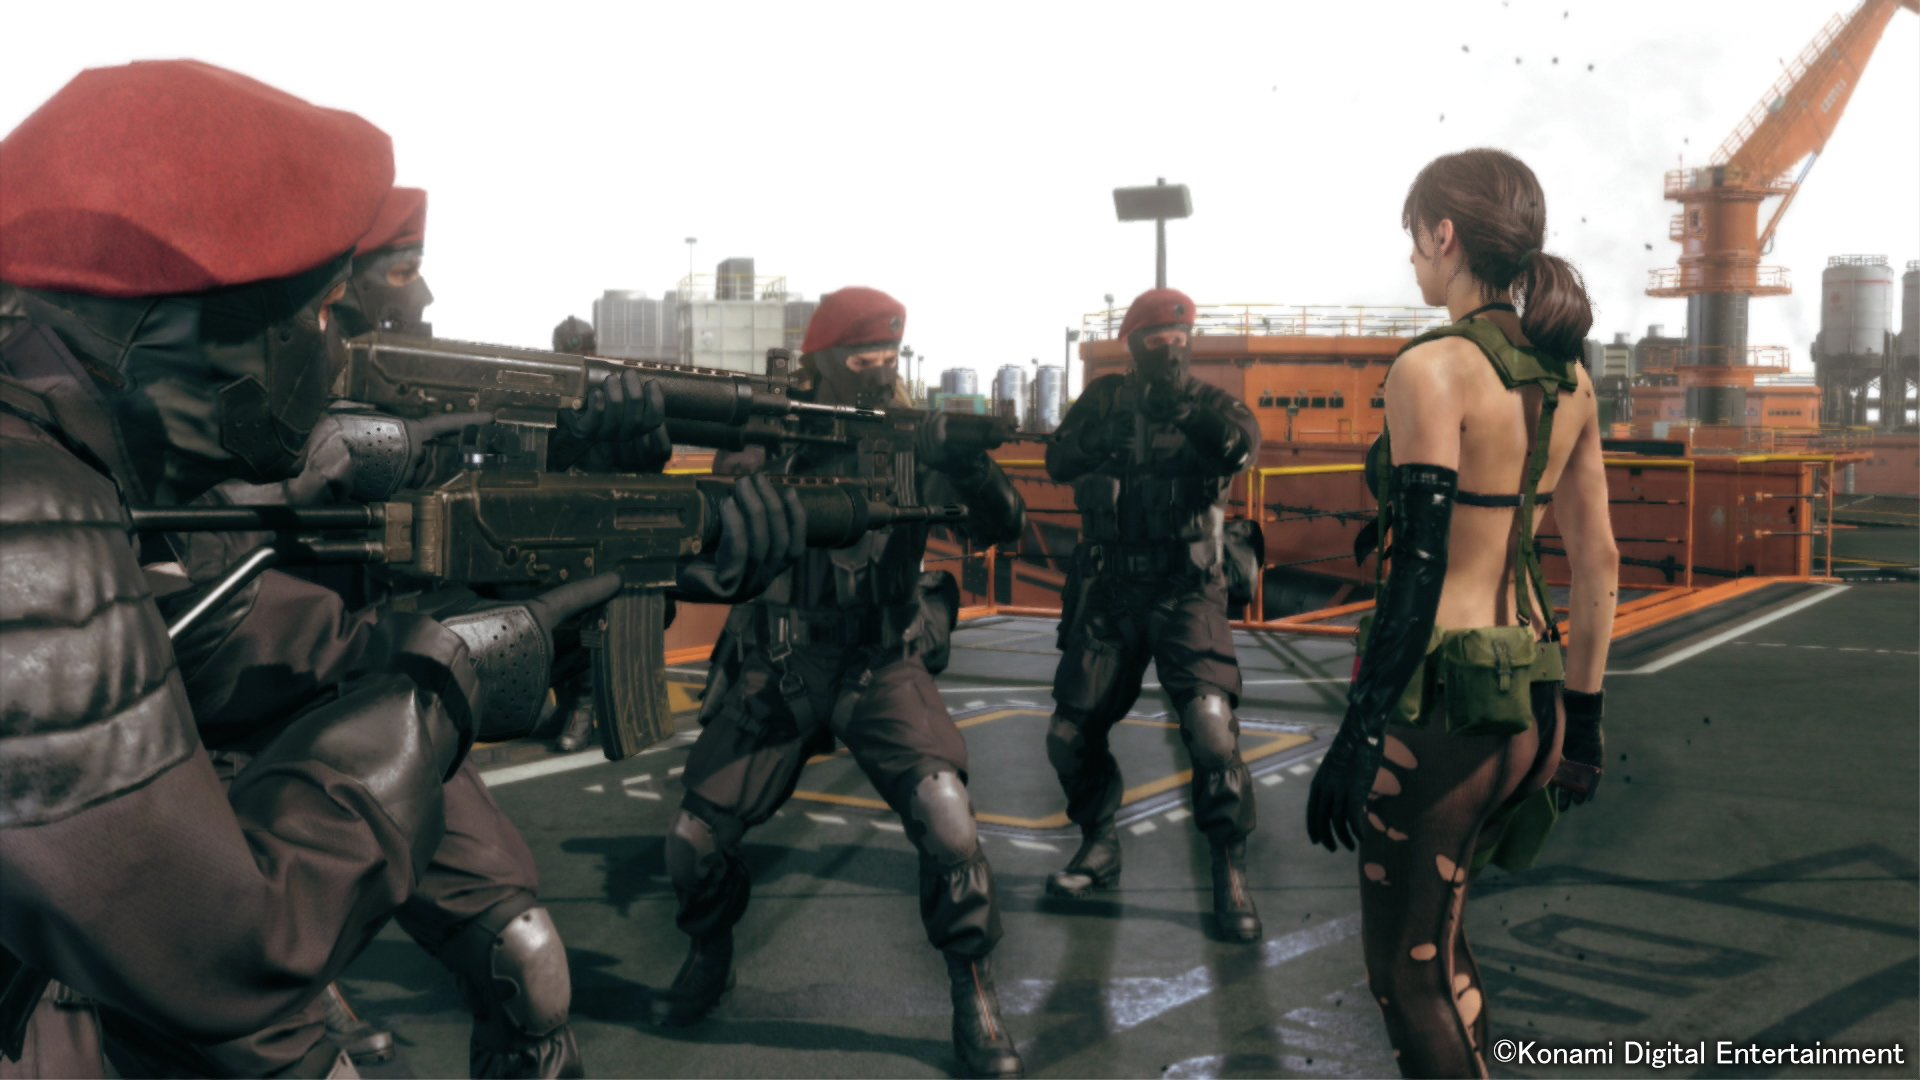 MGSV's Quiet & Parody, Sexiness, and Objectification | The